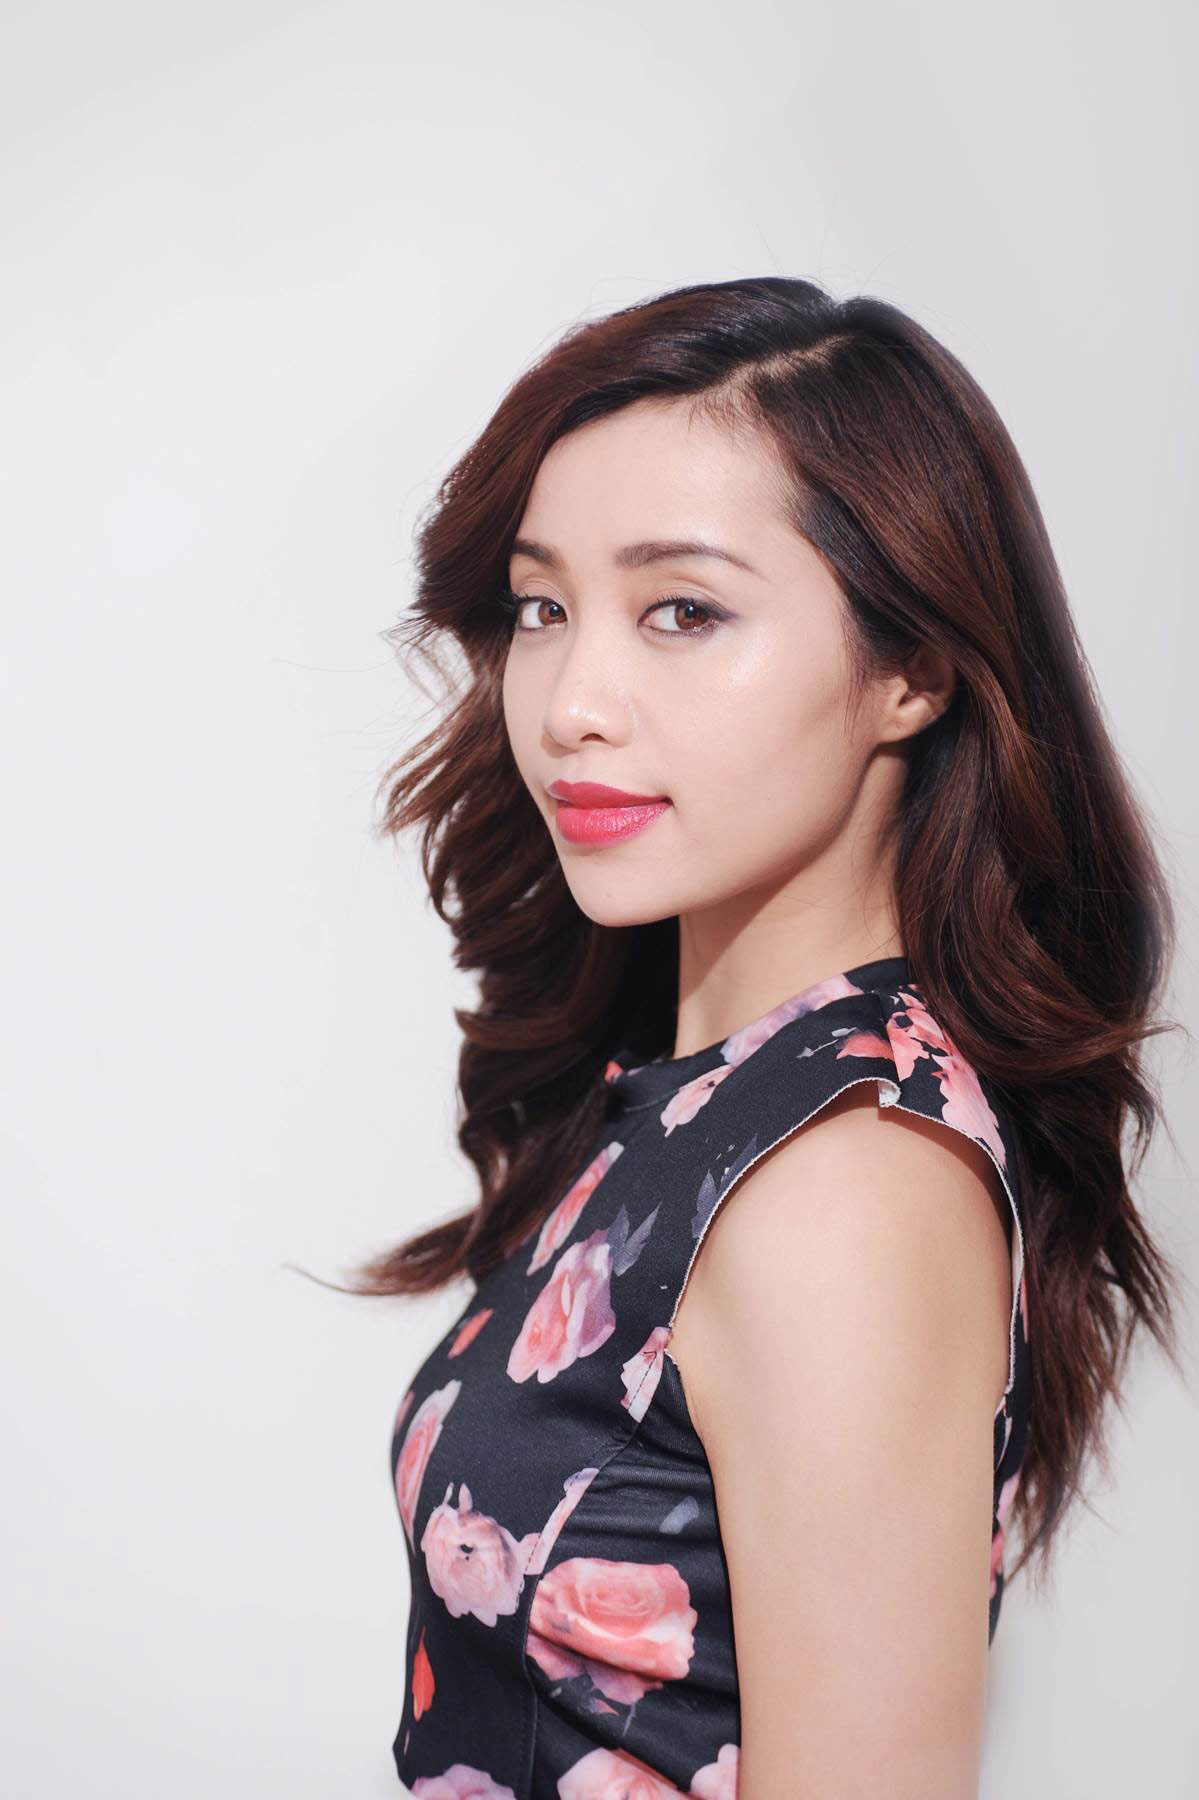 Digital Pioneer Michelle Phan And Endemol Beyond Launch